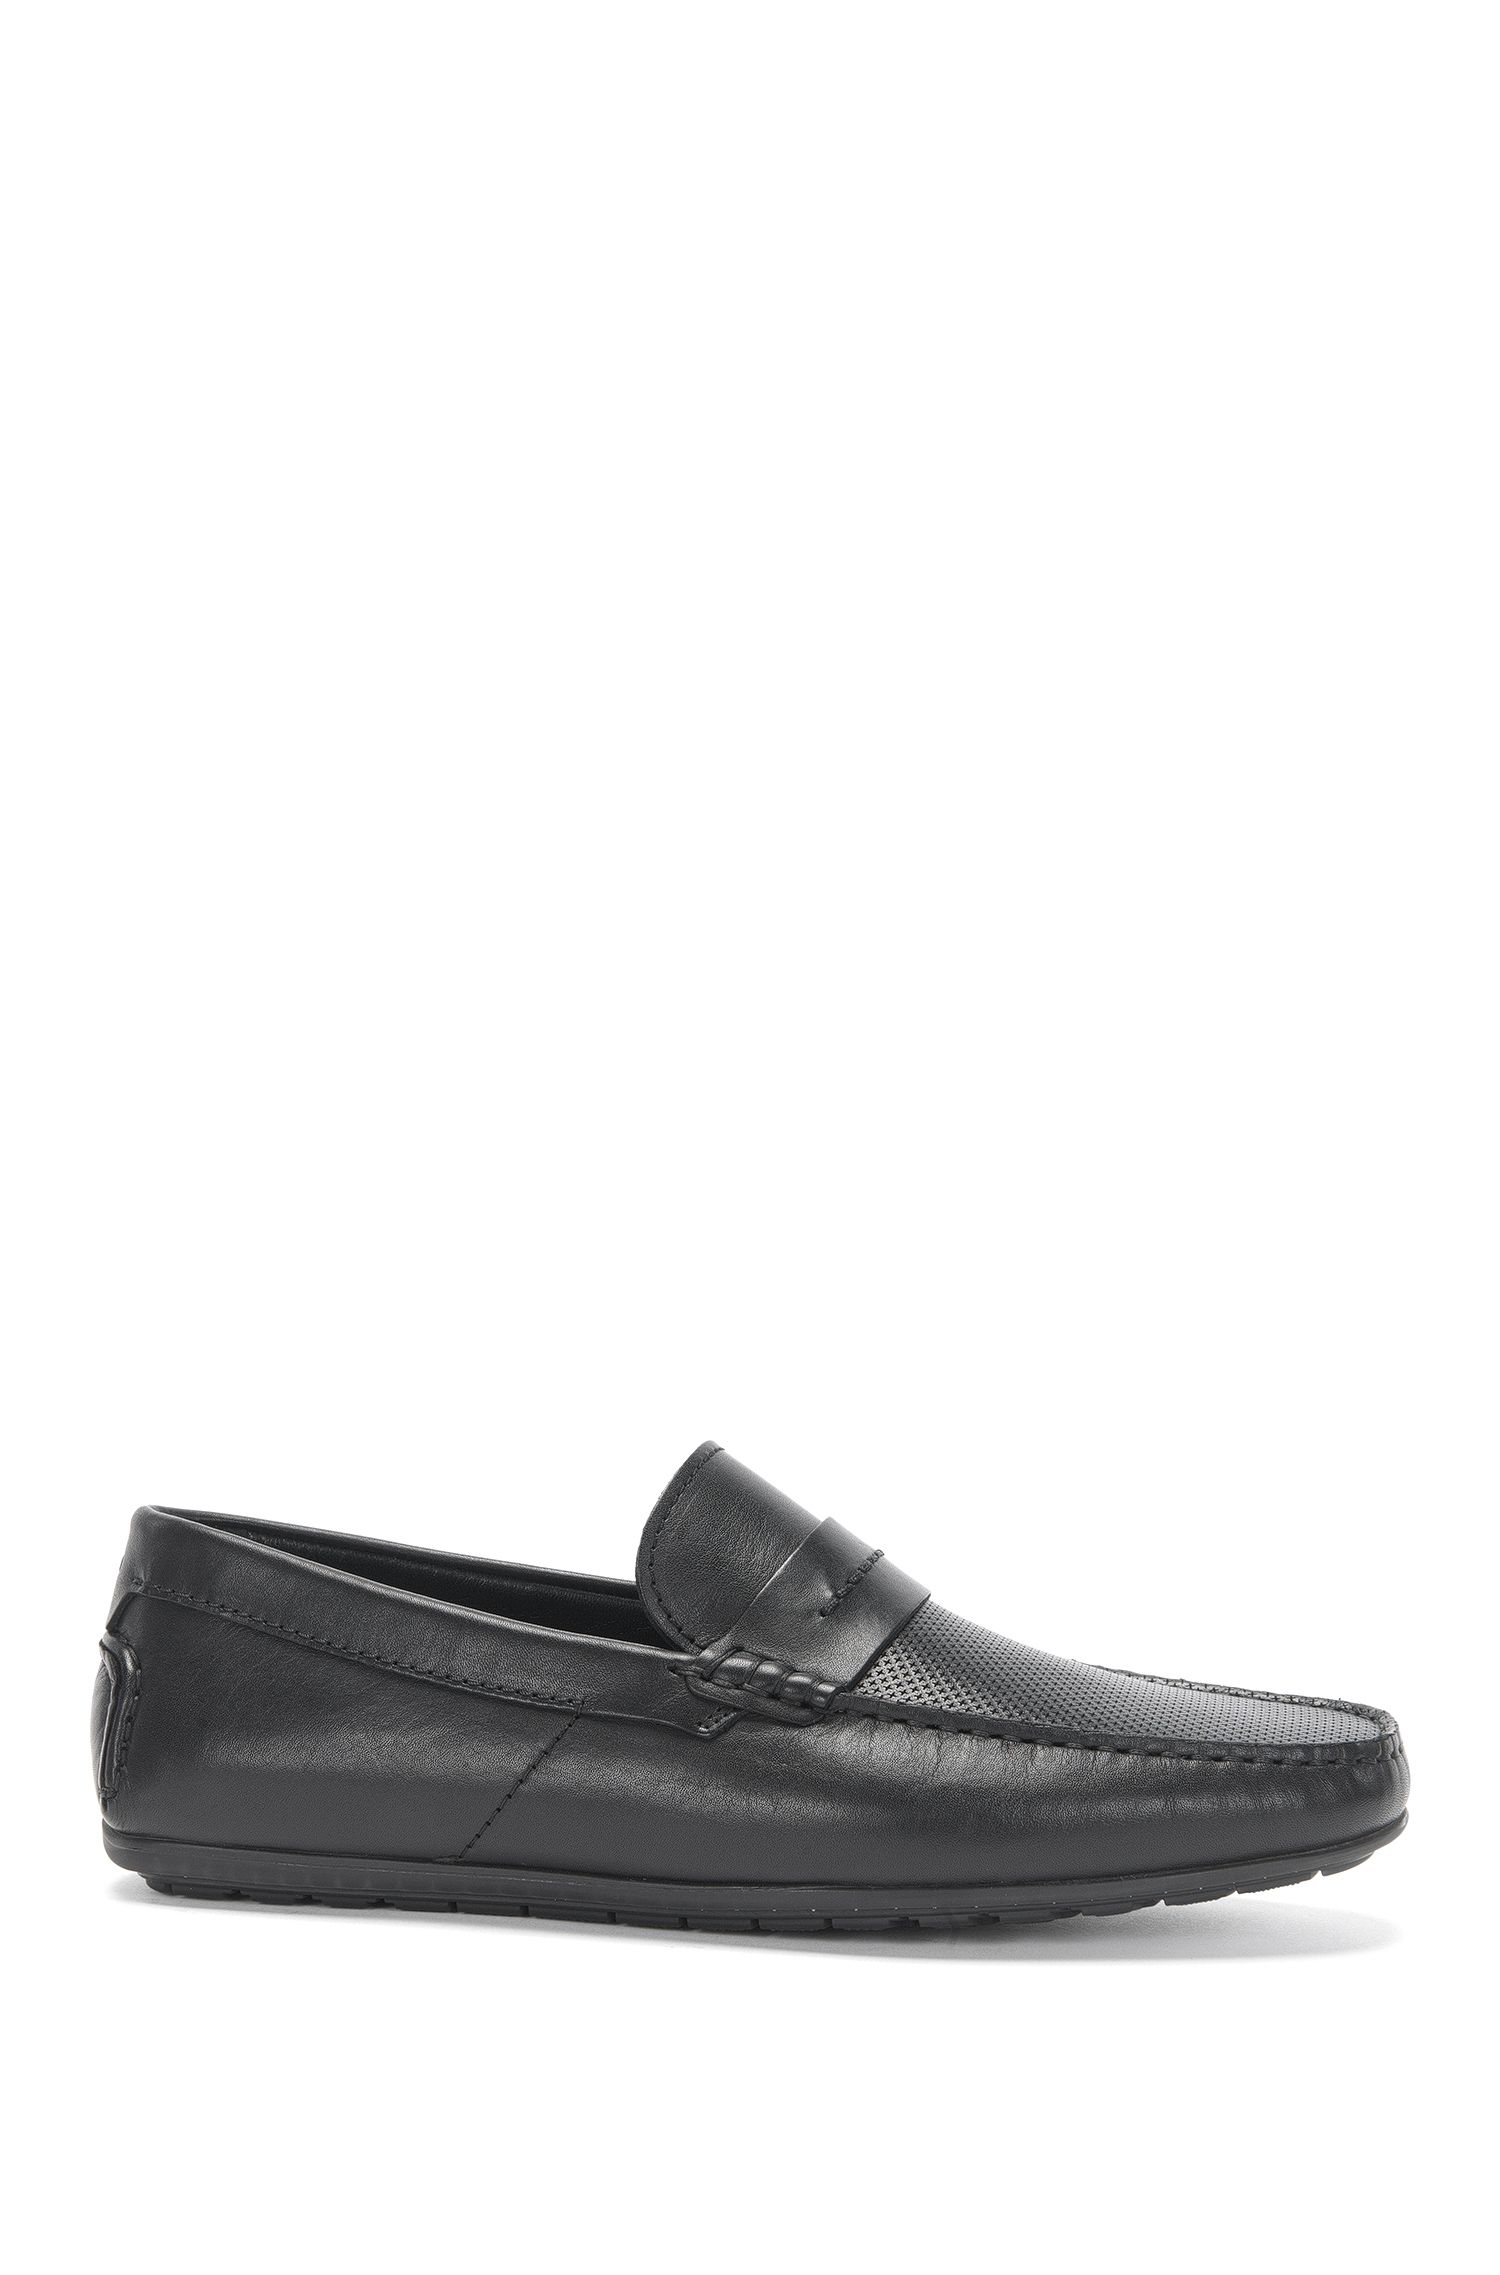 Leather Driving Loafer | Dandy Mocc Plpr